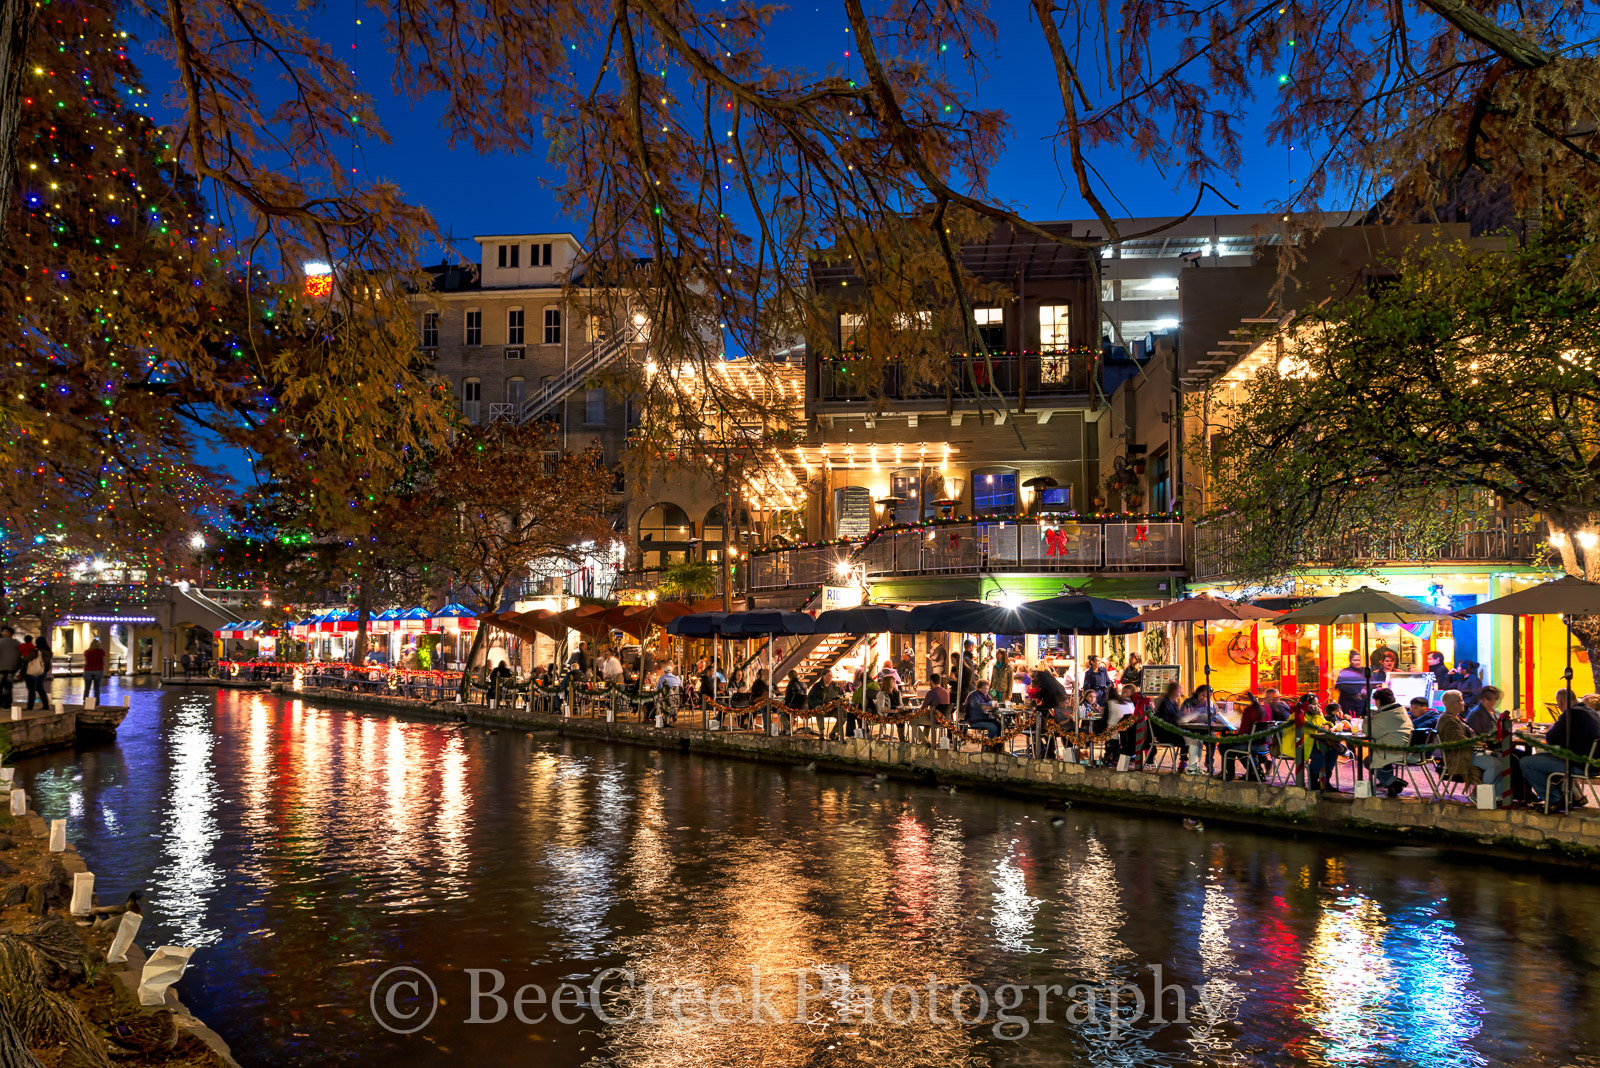 Riverwalk at Christmas, Christmas, River Walk, Riverwalk, San Antonio, boats, cityscape, cityscapes, decorations, festive, festivities, holiday, lights, season, photo